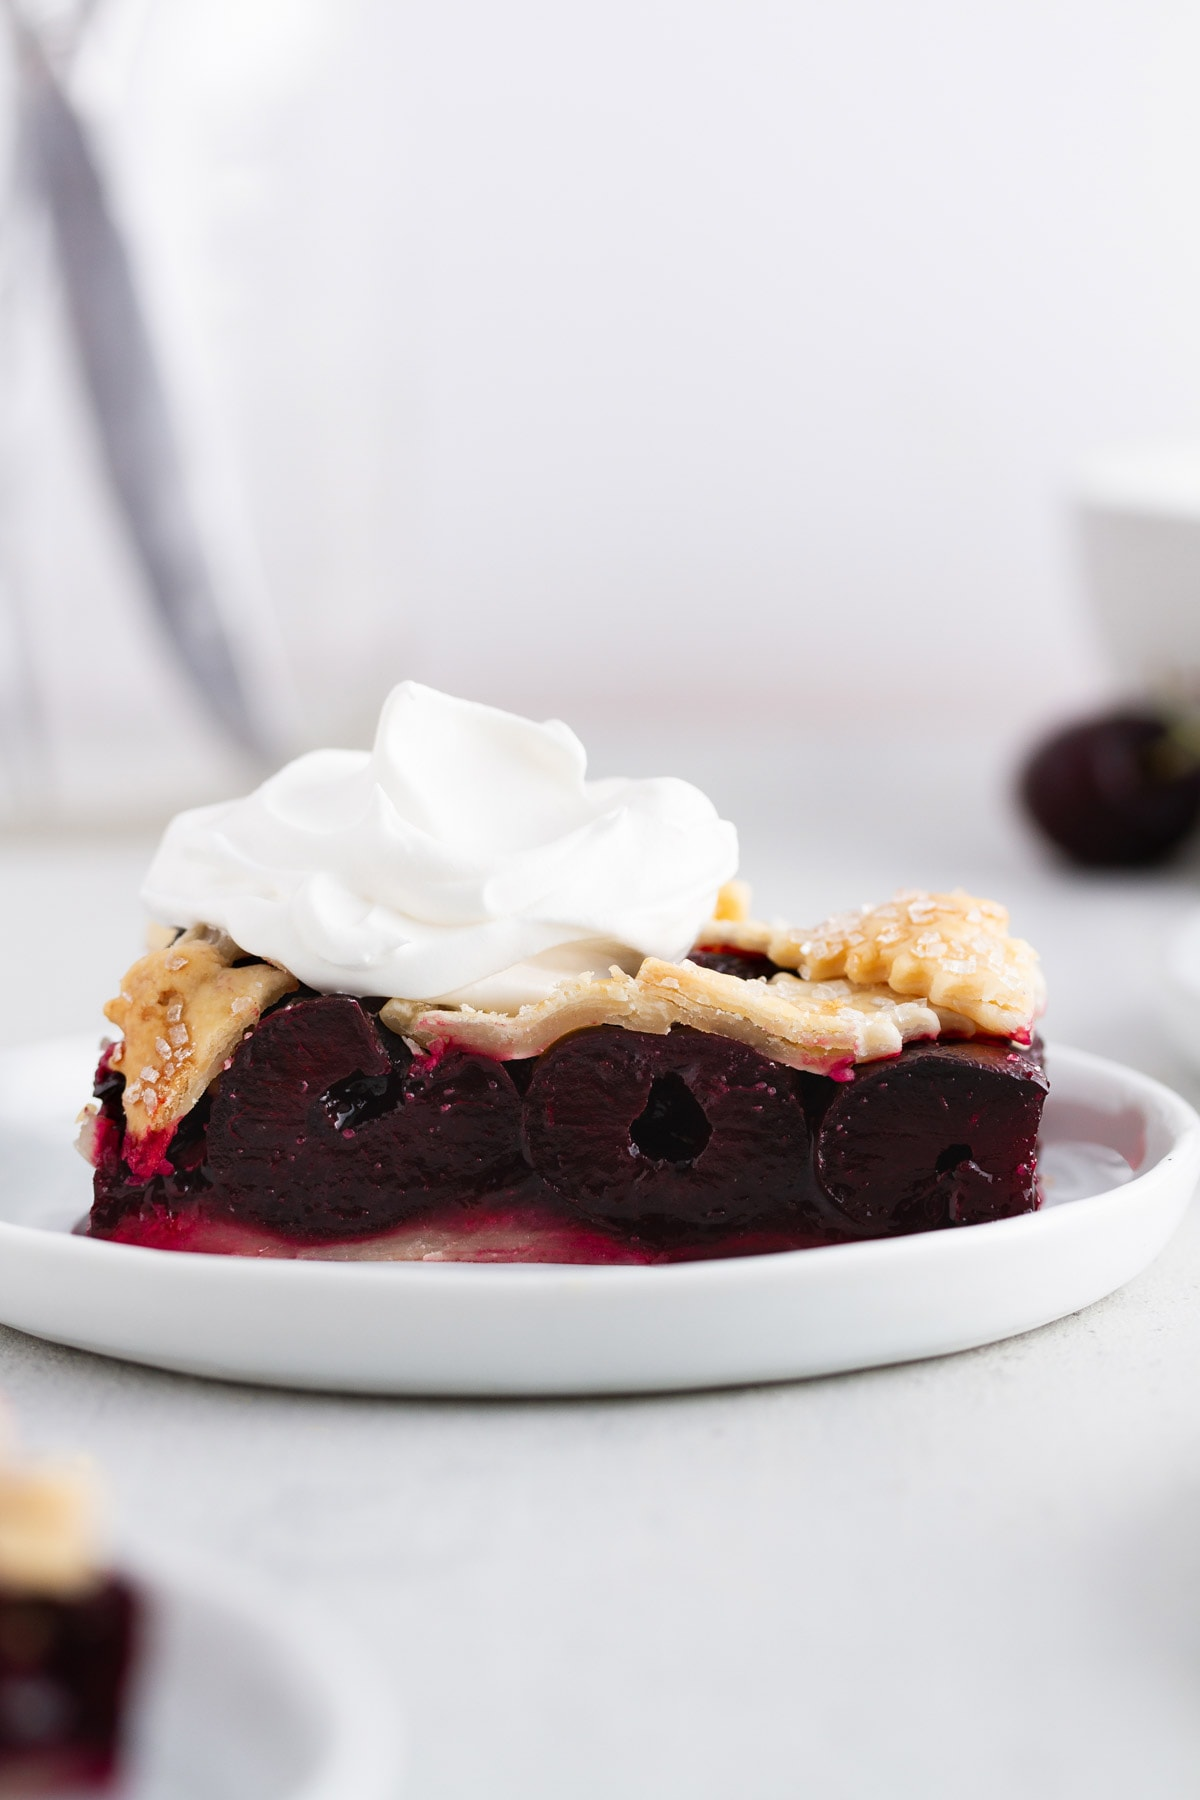 a cherry pie bar on a plate with whipped cream